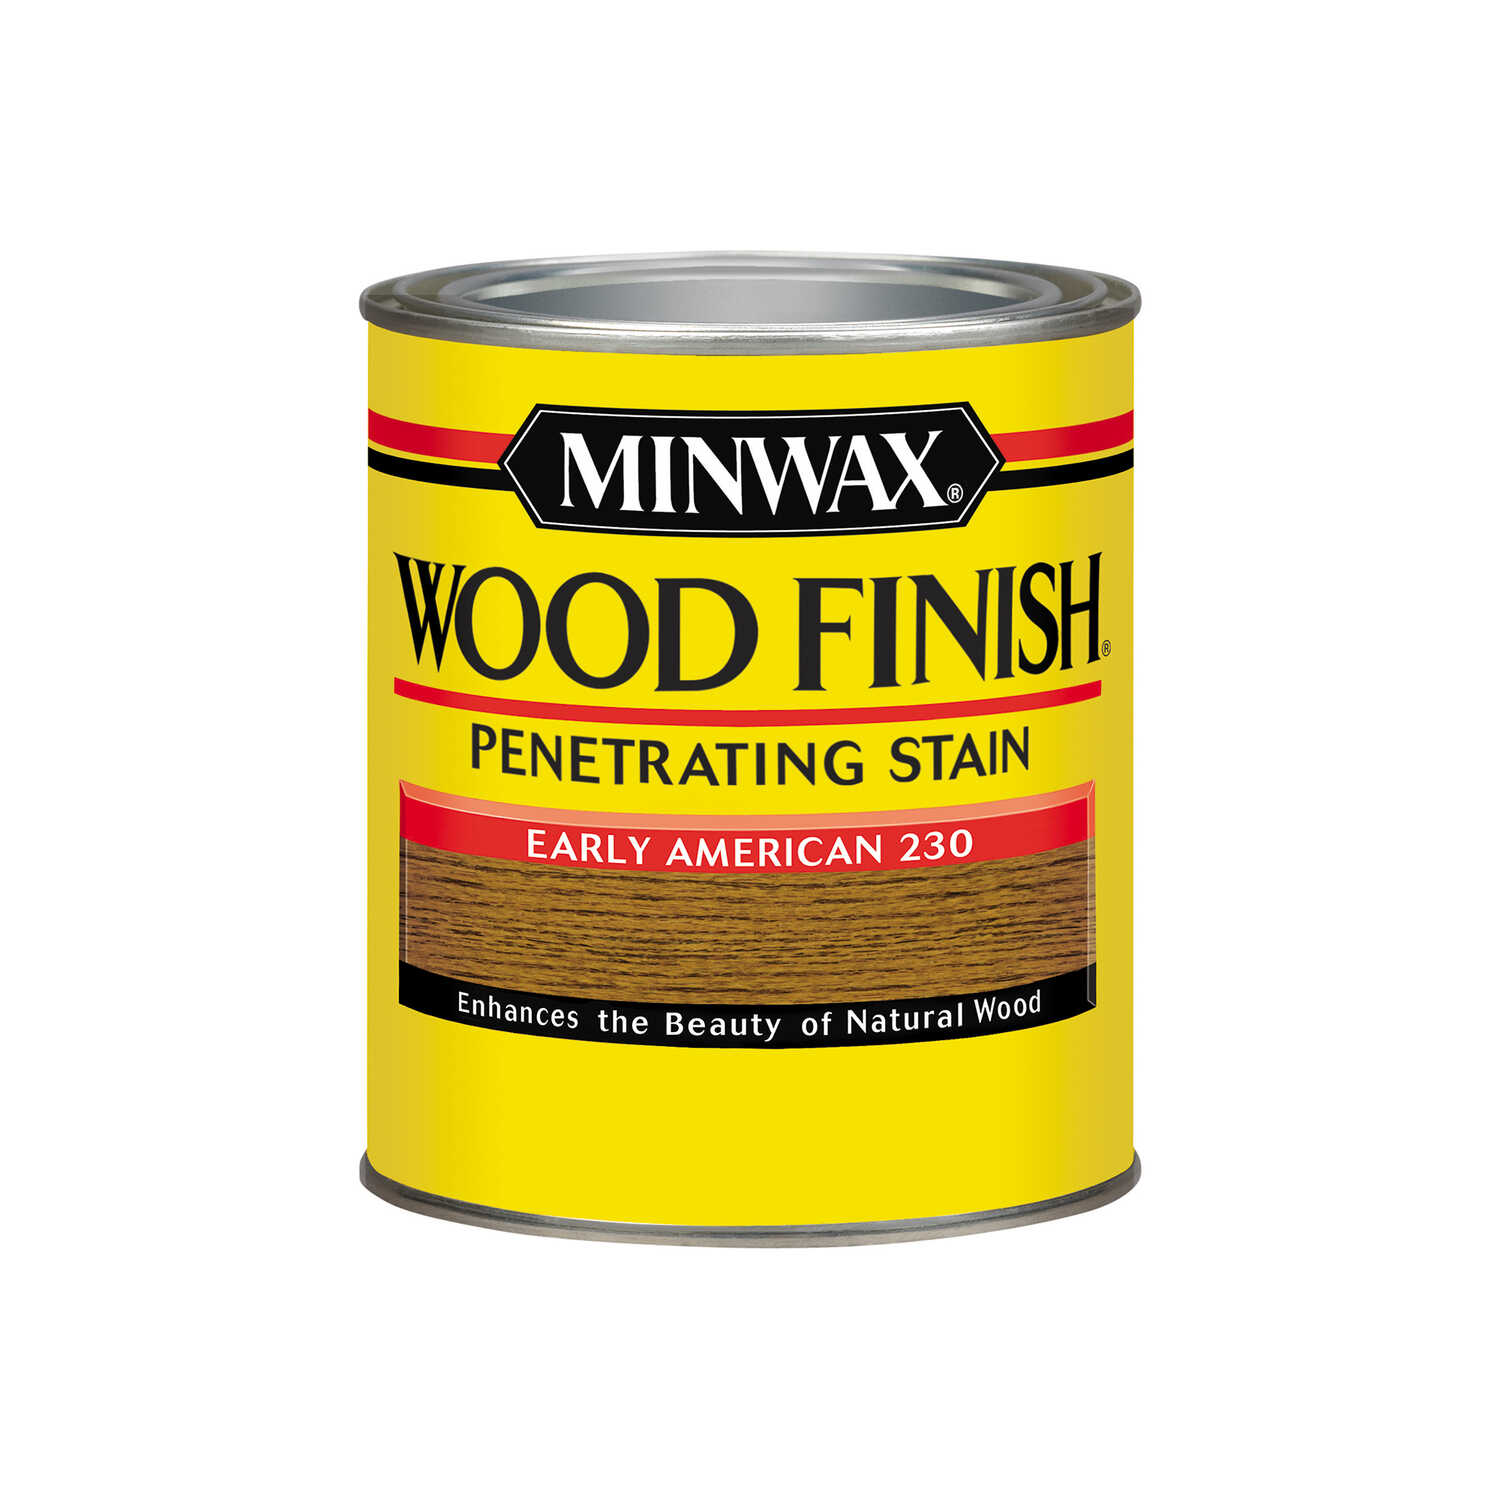 Minwax  Wood Finish  Semi-Transparent  Early American  Oil-Based  Oil  Stain  1 qt.